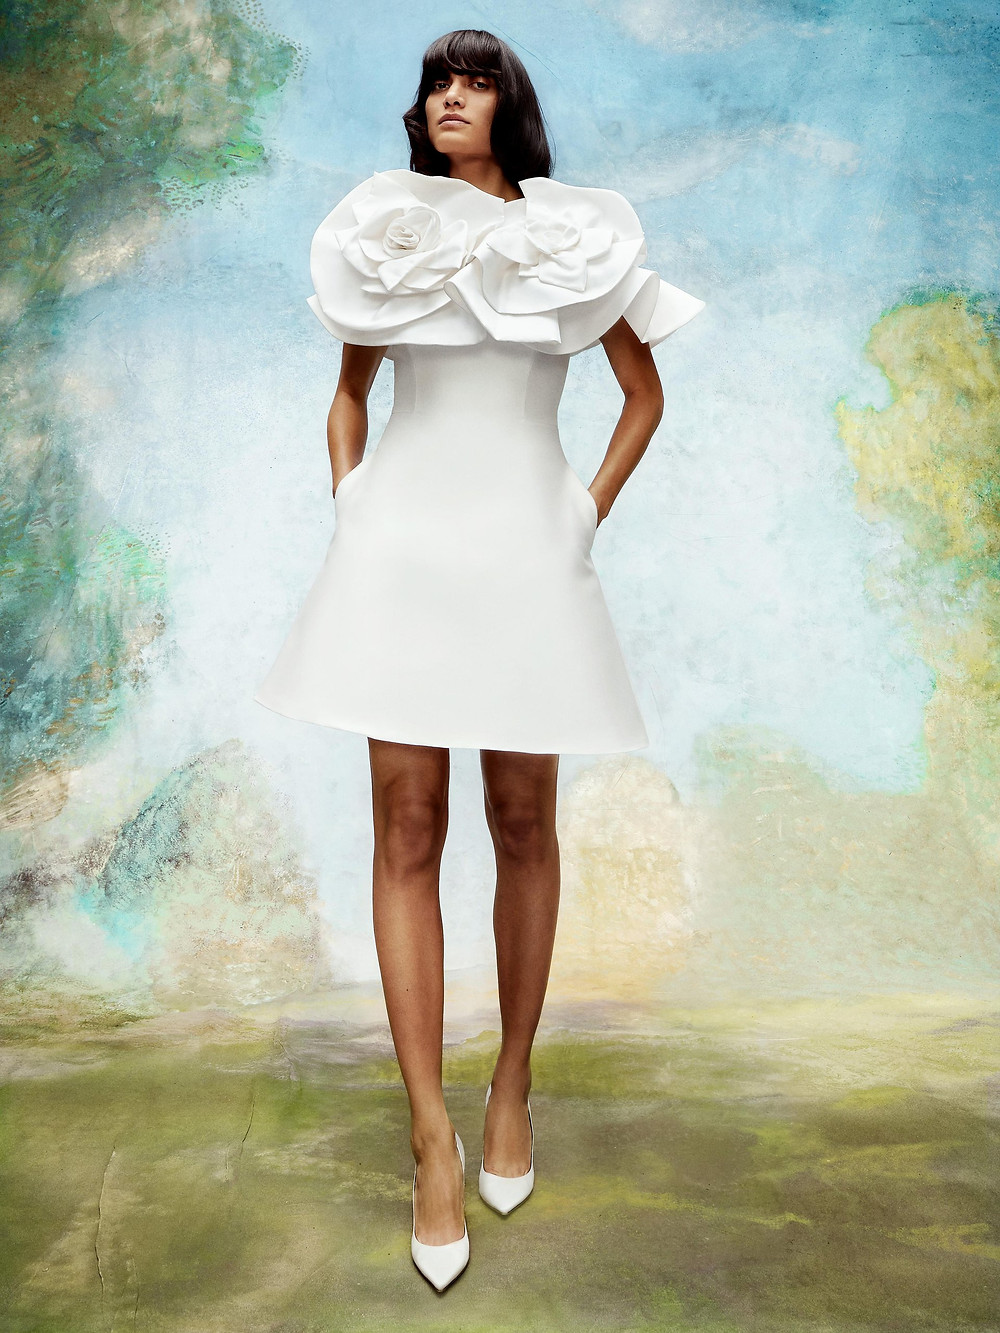 A Viktor & Rolf short crepe wedding dress with large flowers